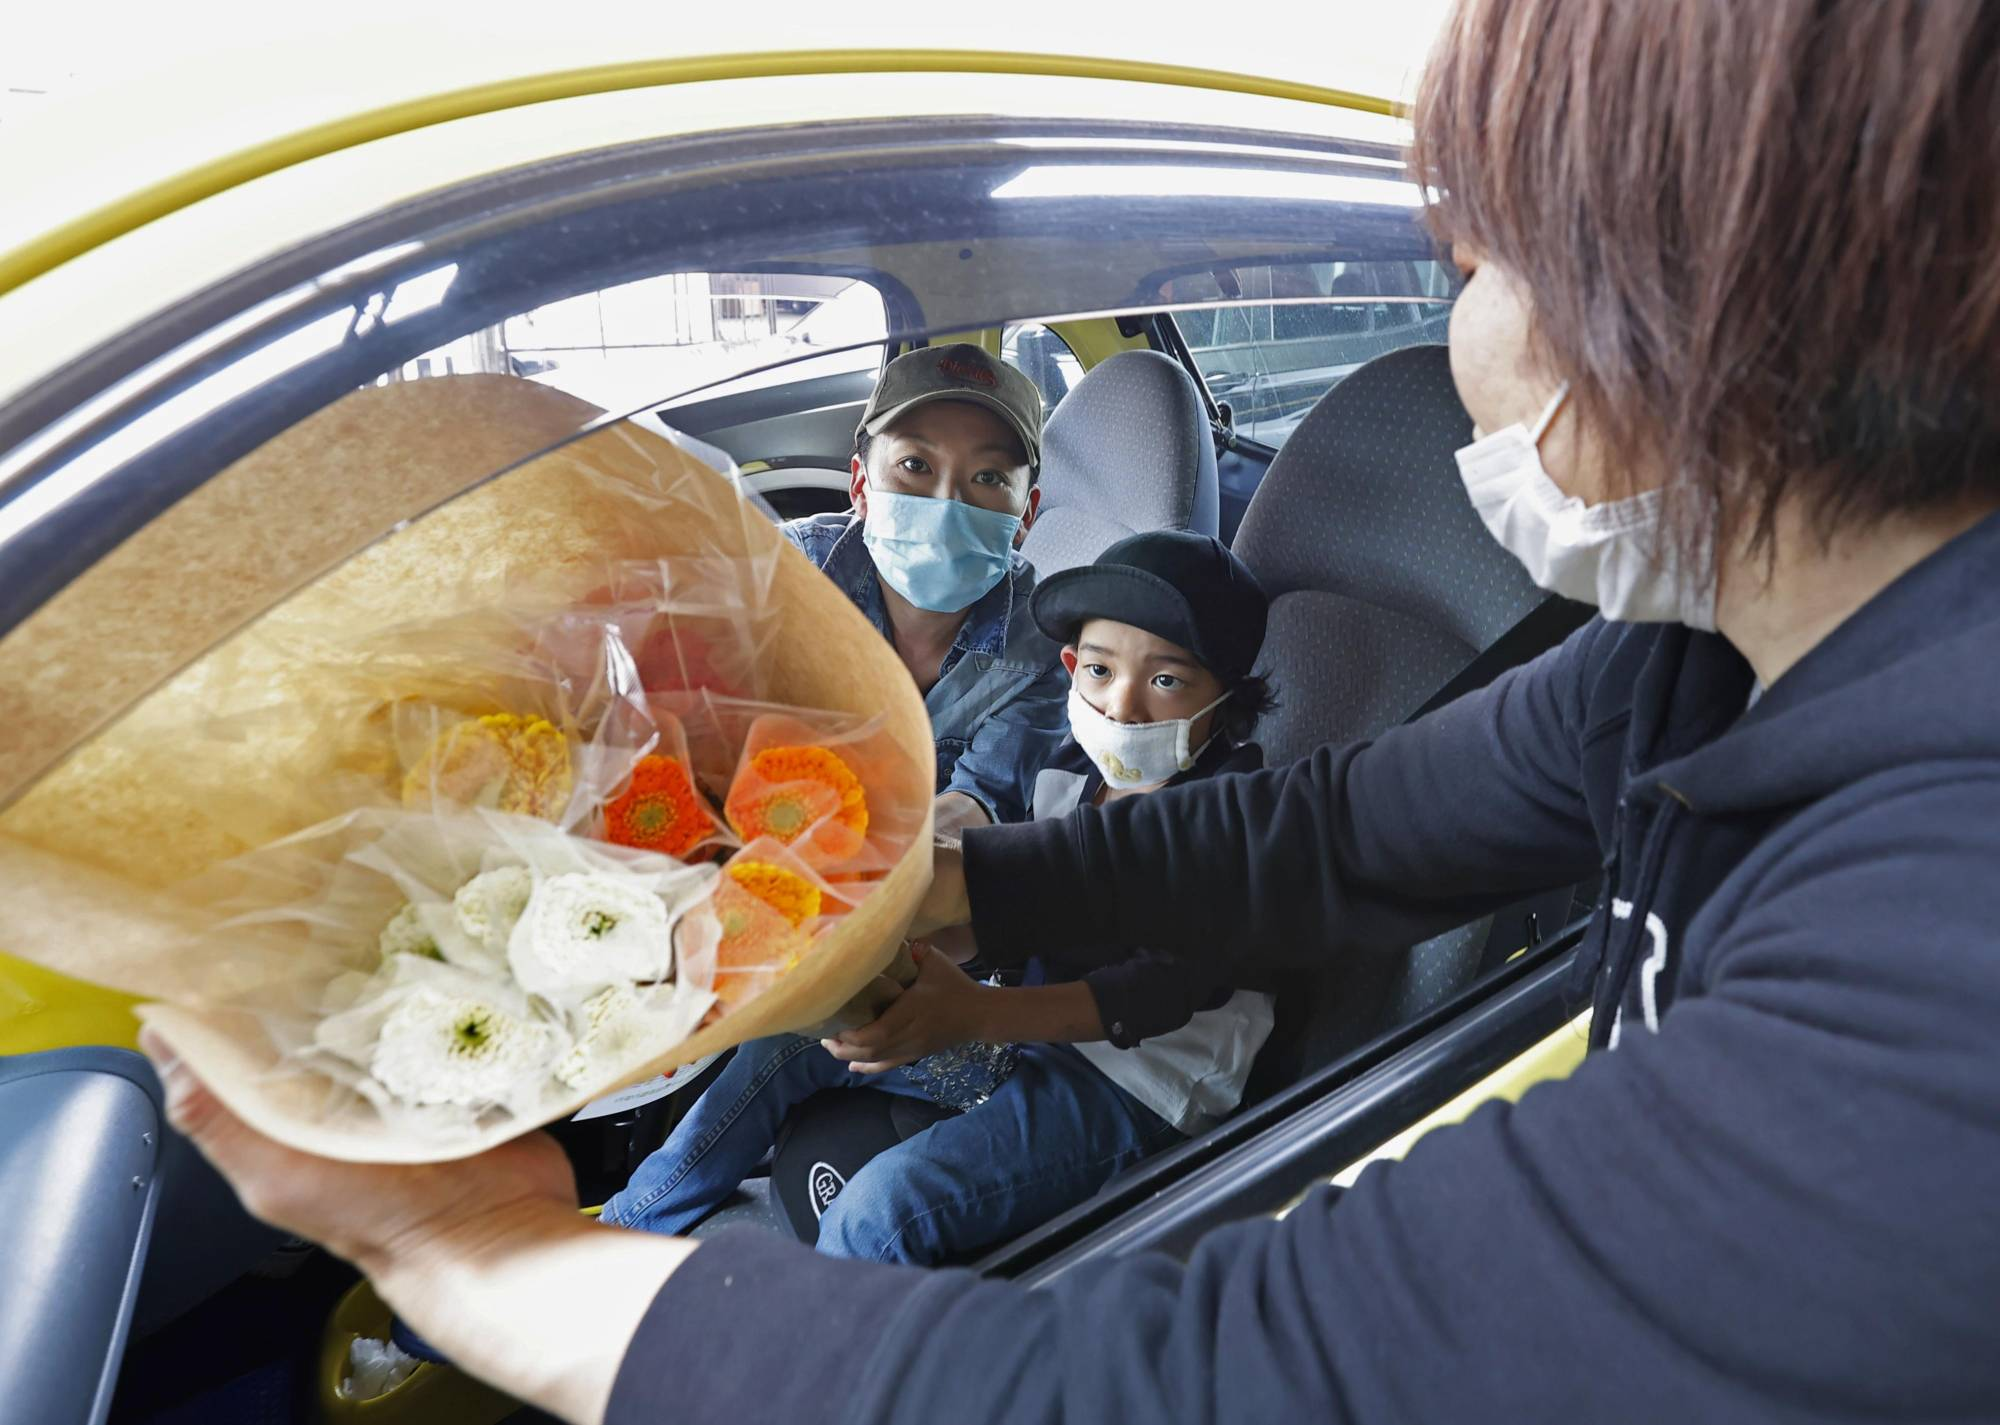 Customers pick up flowers for Mother's Day at a drive-thru service in Kawasaki on Saturday. | KYODO